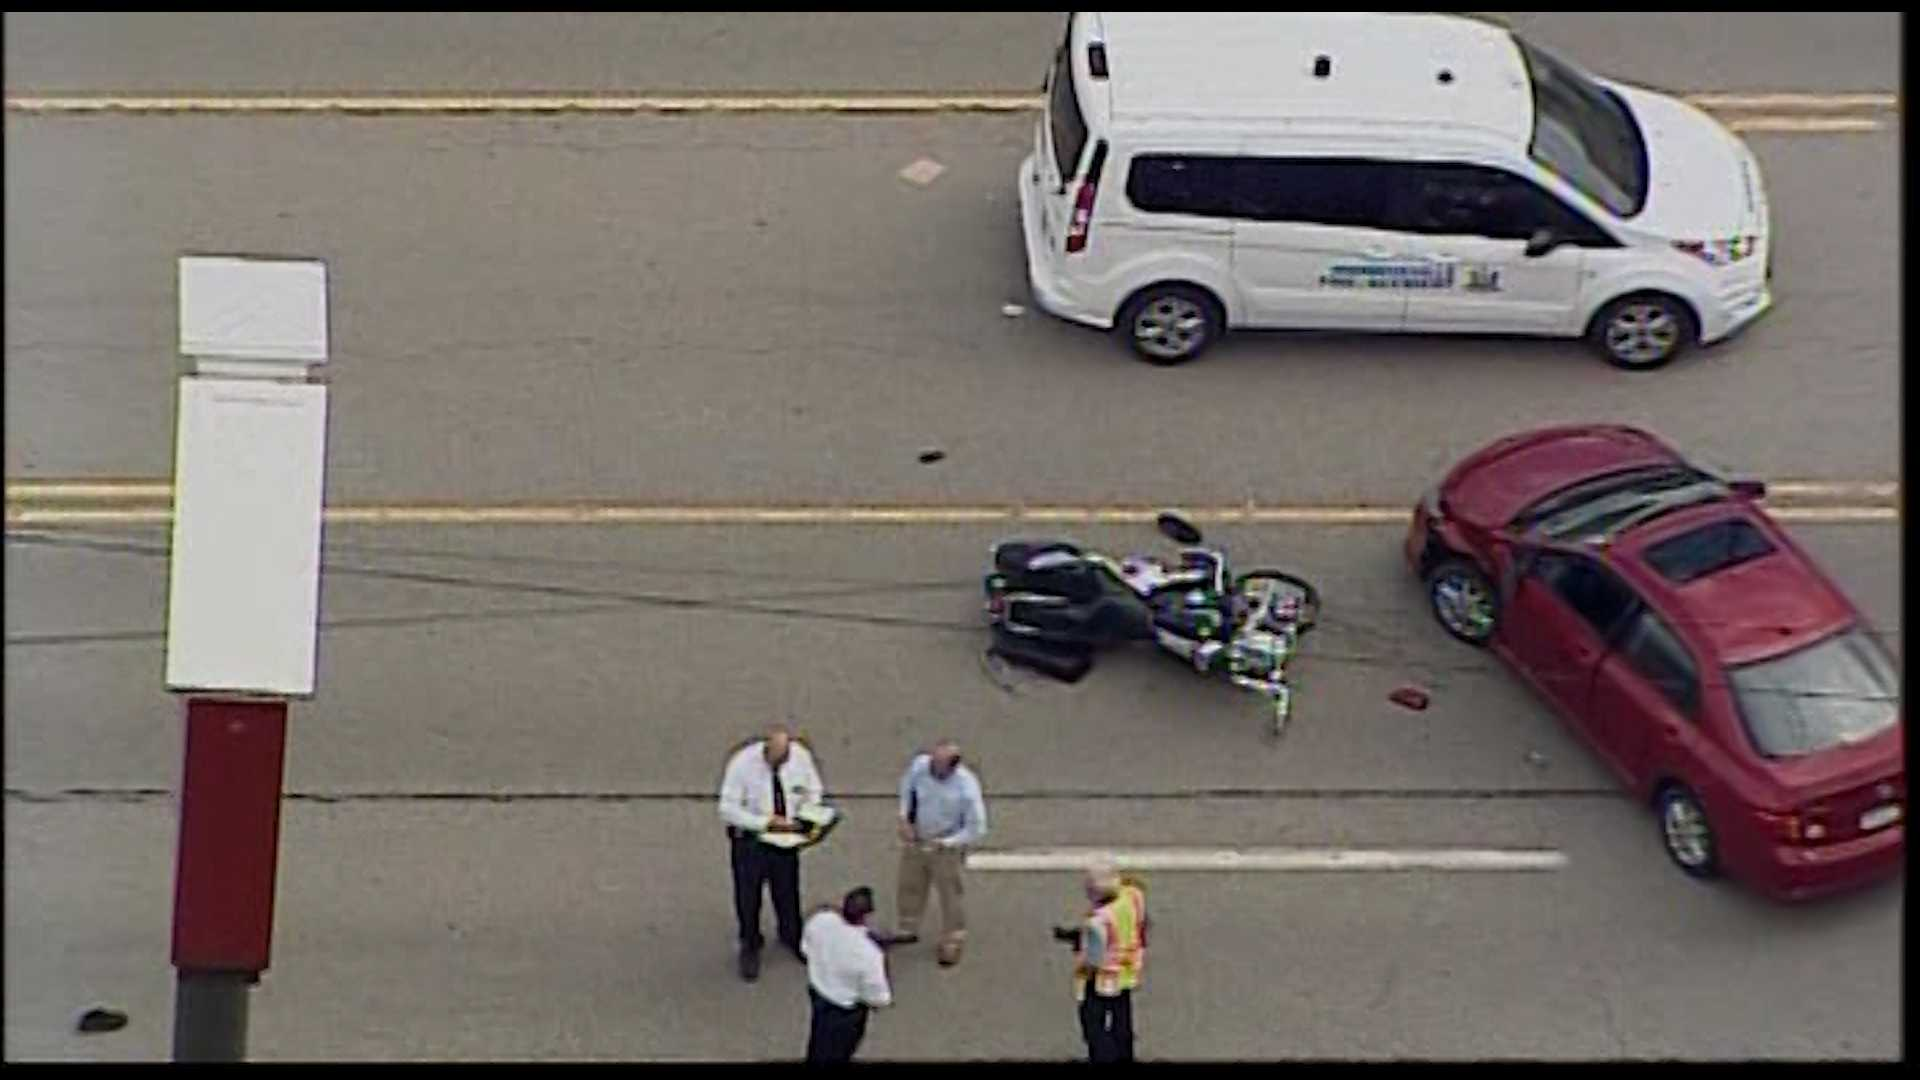 1 dead in car-motorcycle crash on Route 22 in Monroeville